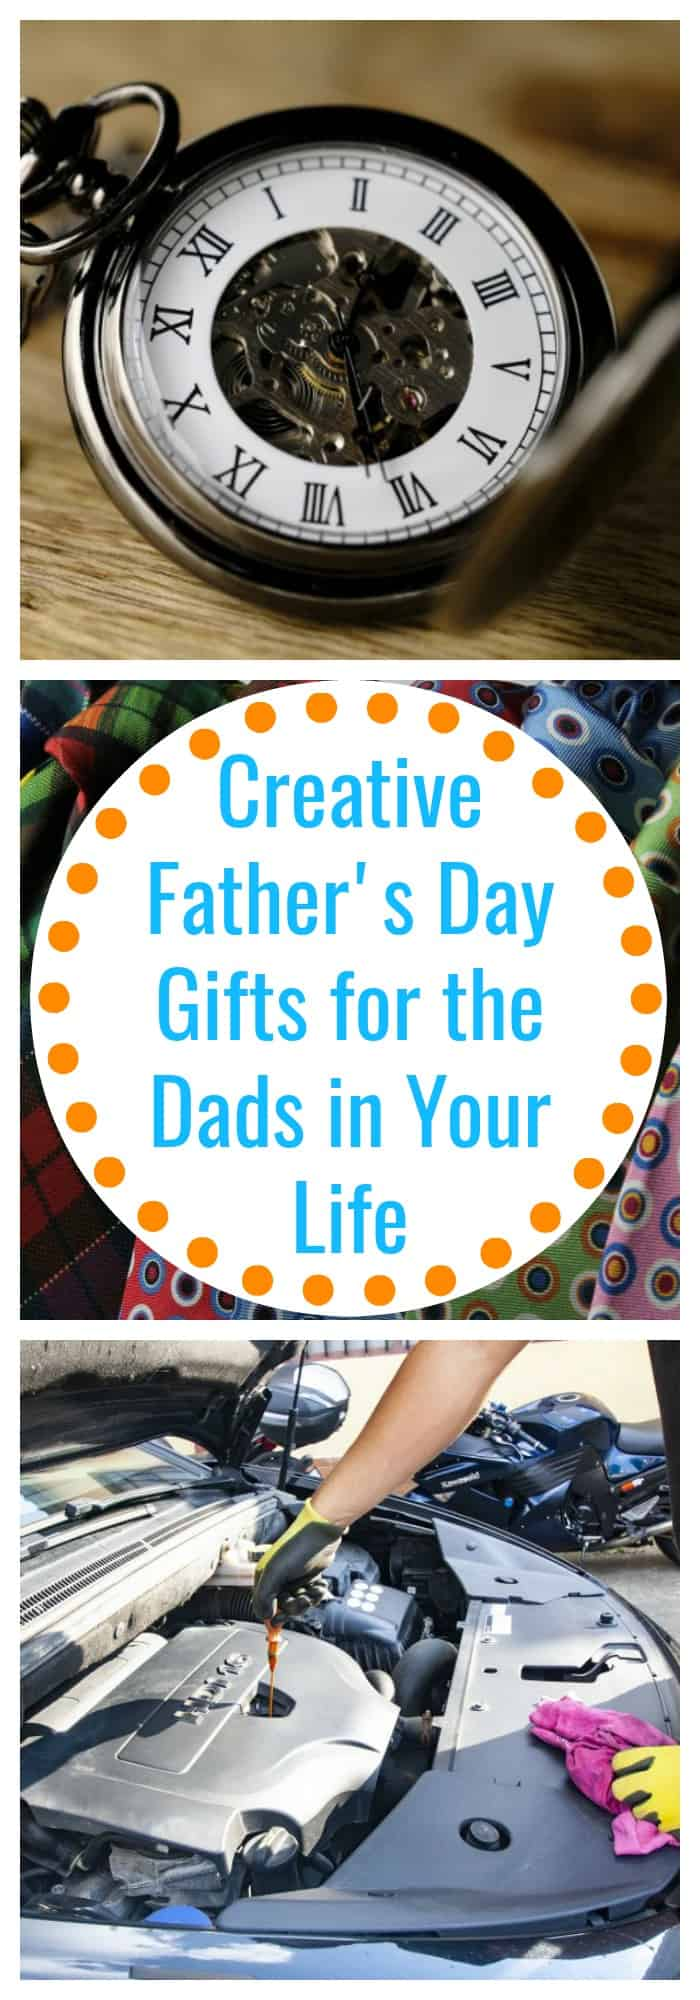 Creative Father's Day Gifts for the Dads in Your Life